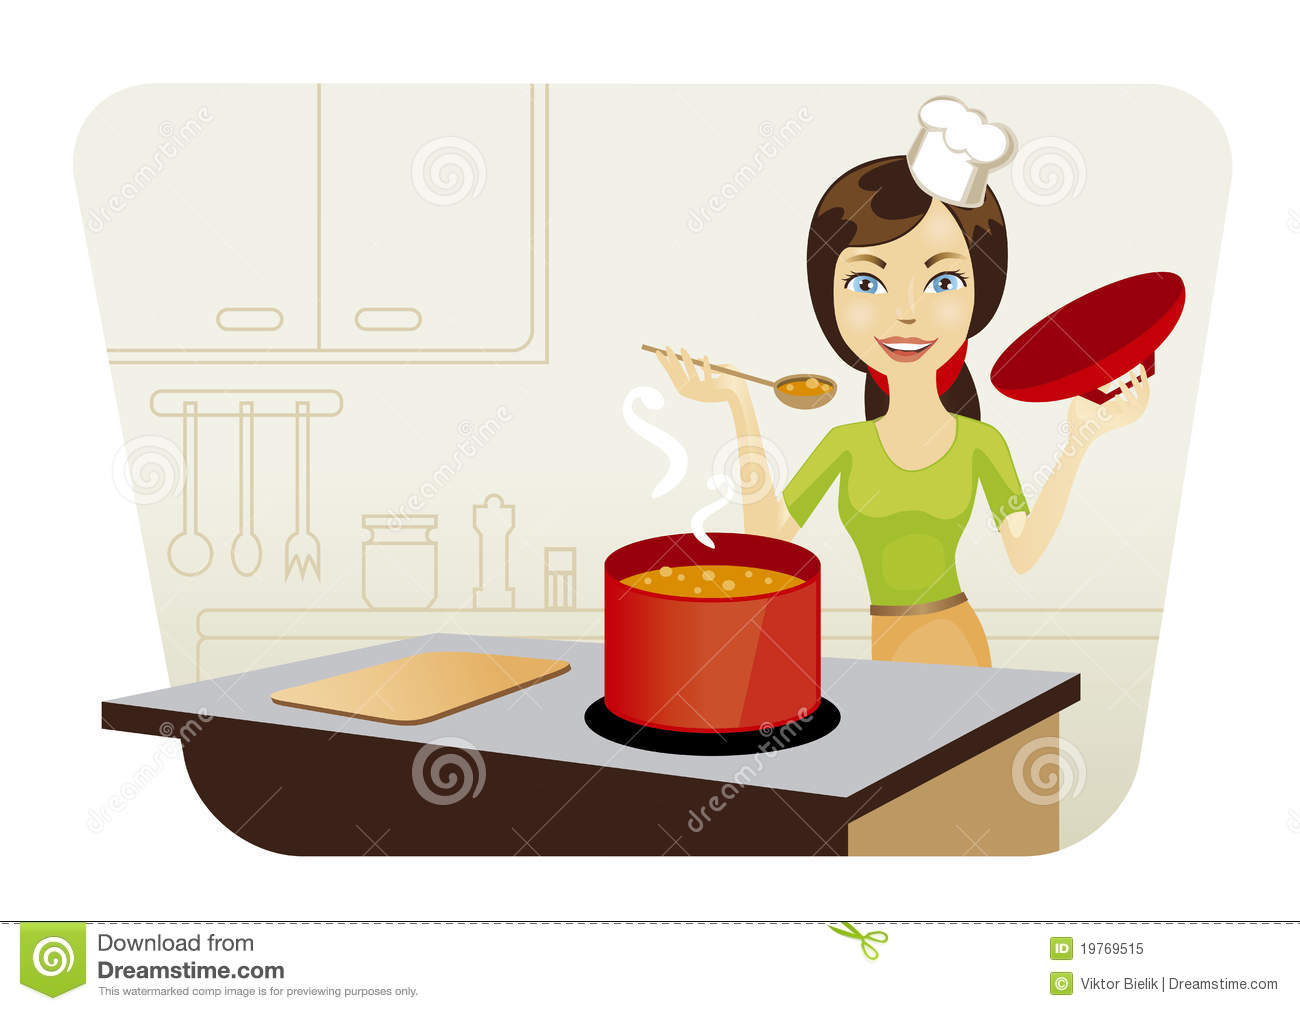 Selection of cartoons on cooking kitchens food and eating - Beautiful Cooking Kitchen